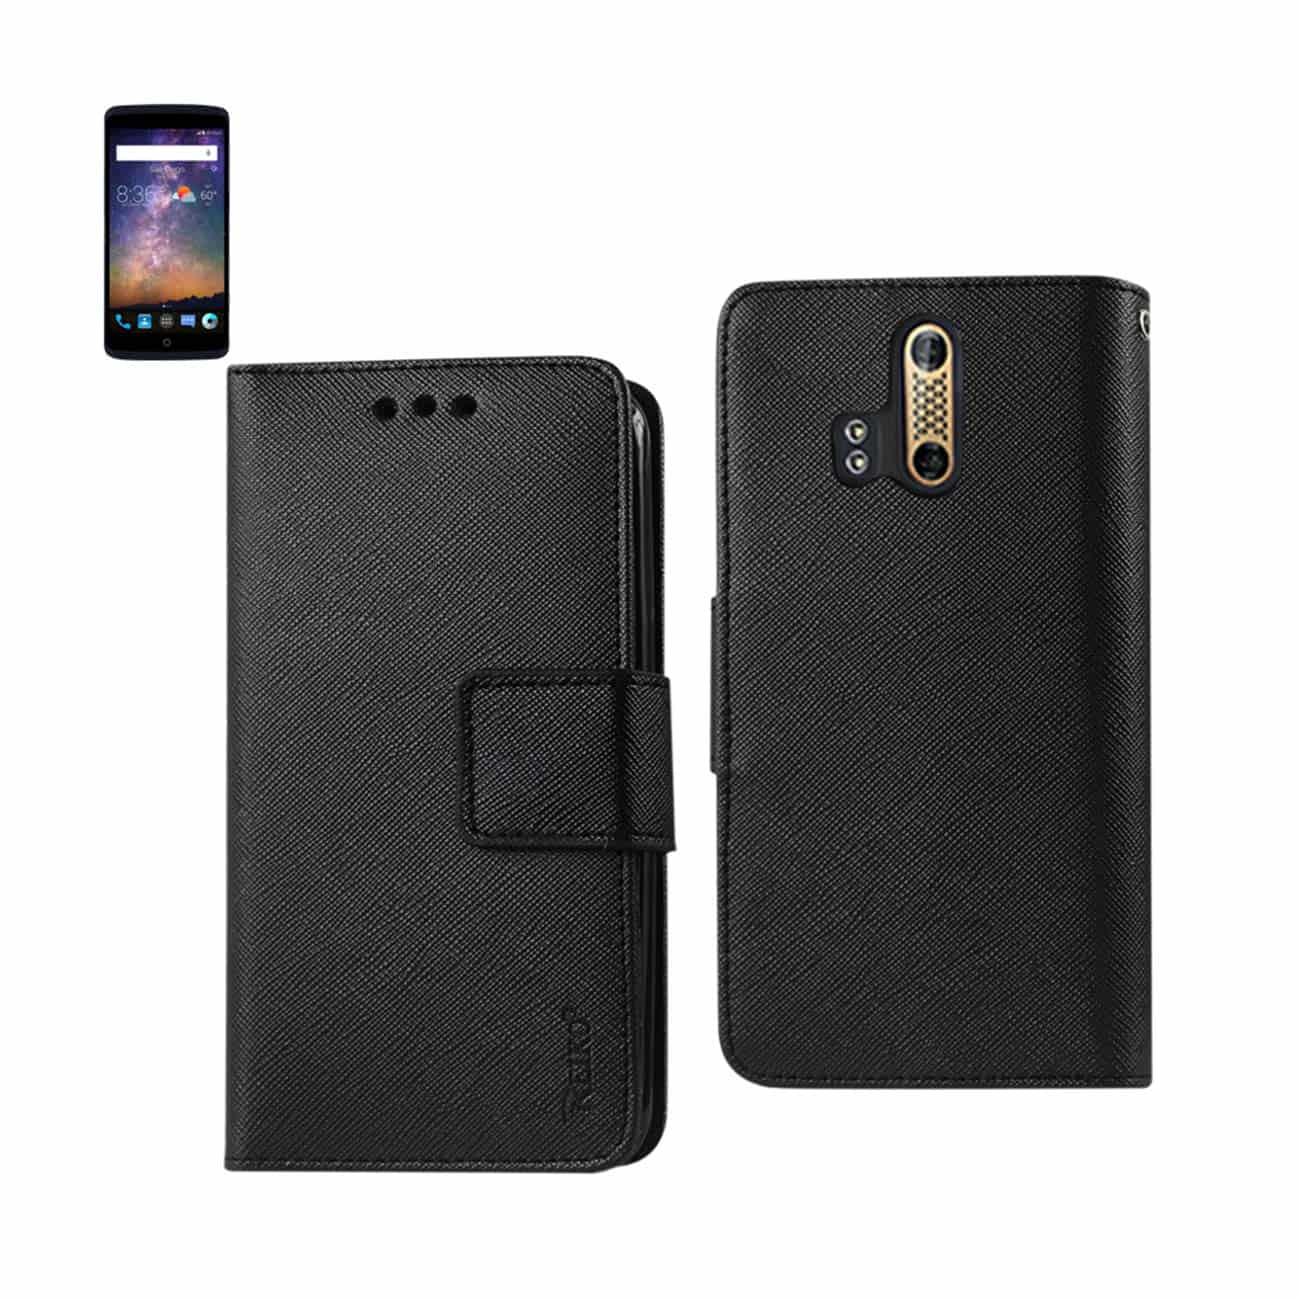 ZTE AXON PRO 3-IN-1 WALLET CASE IN BLACK